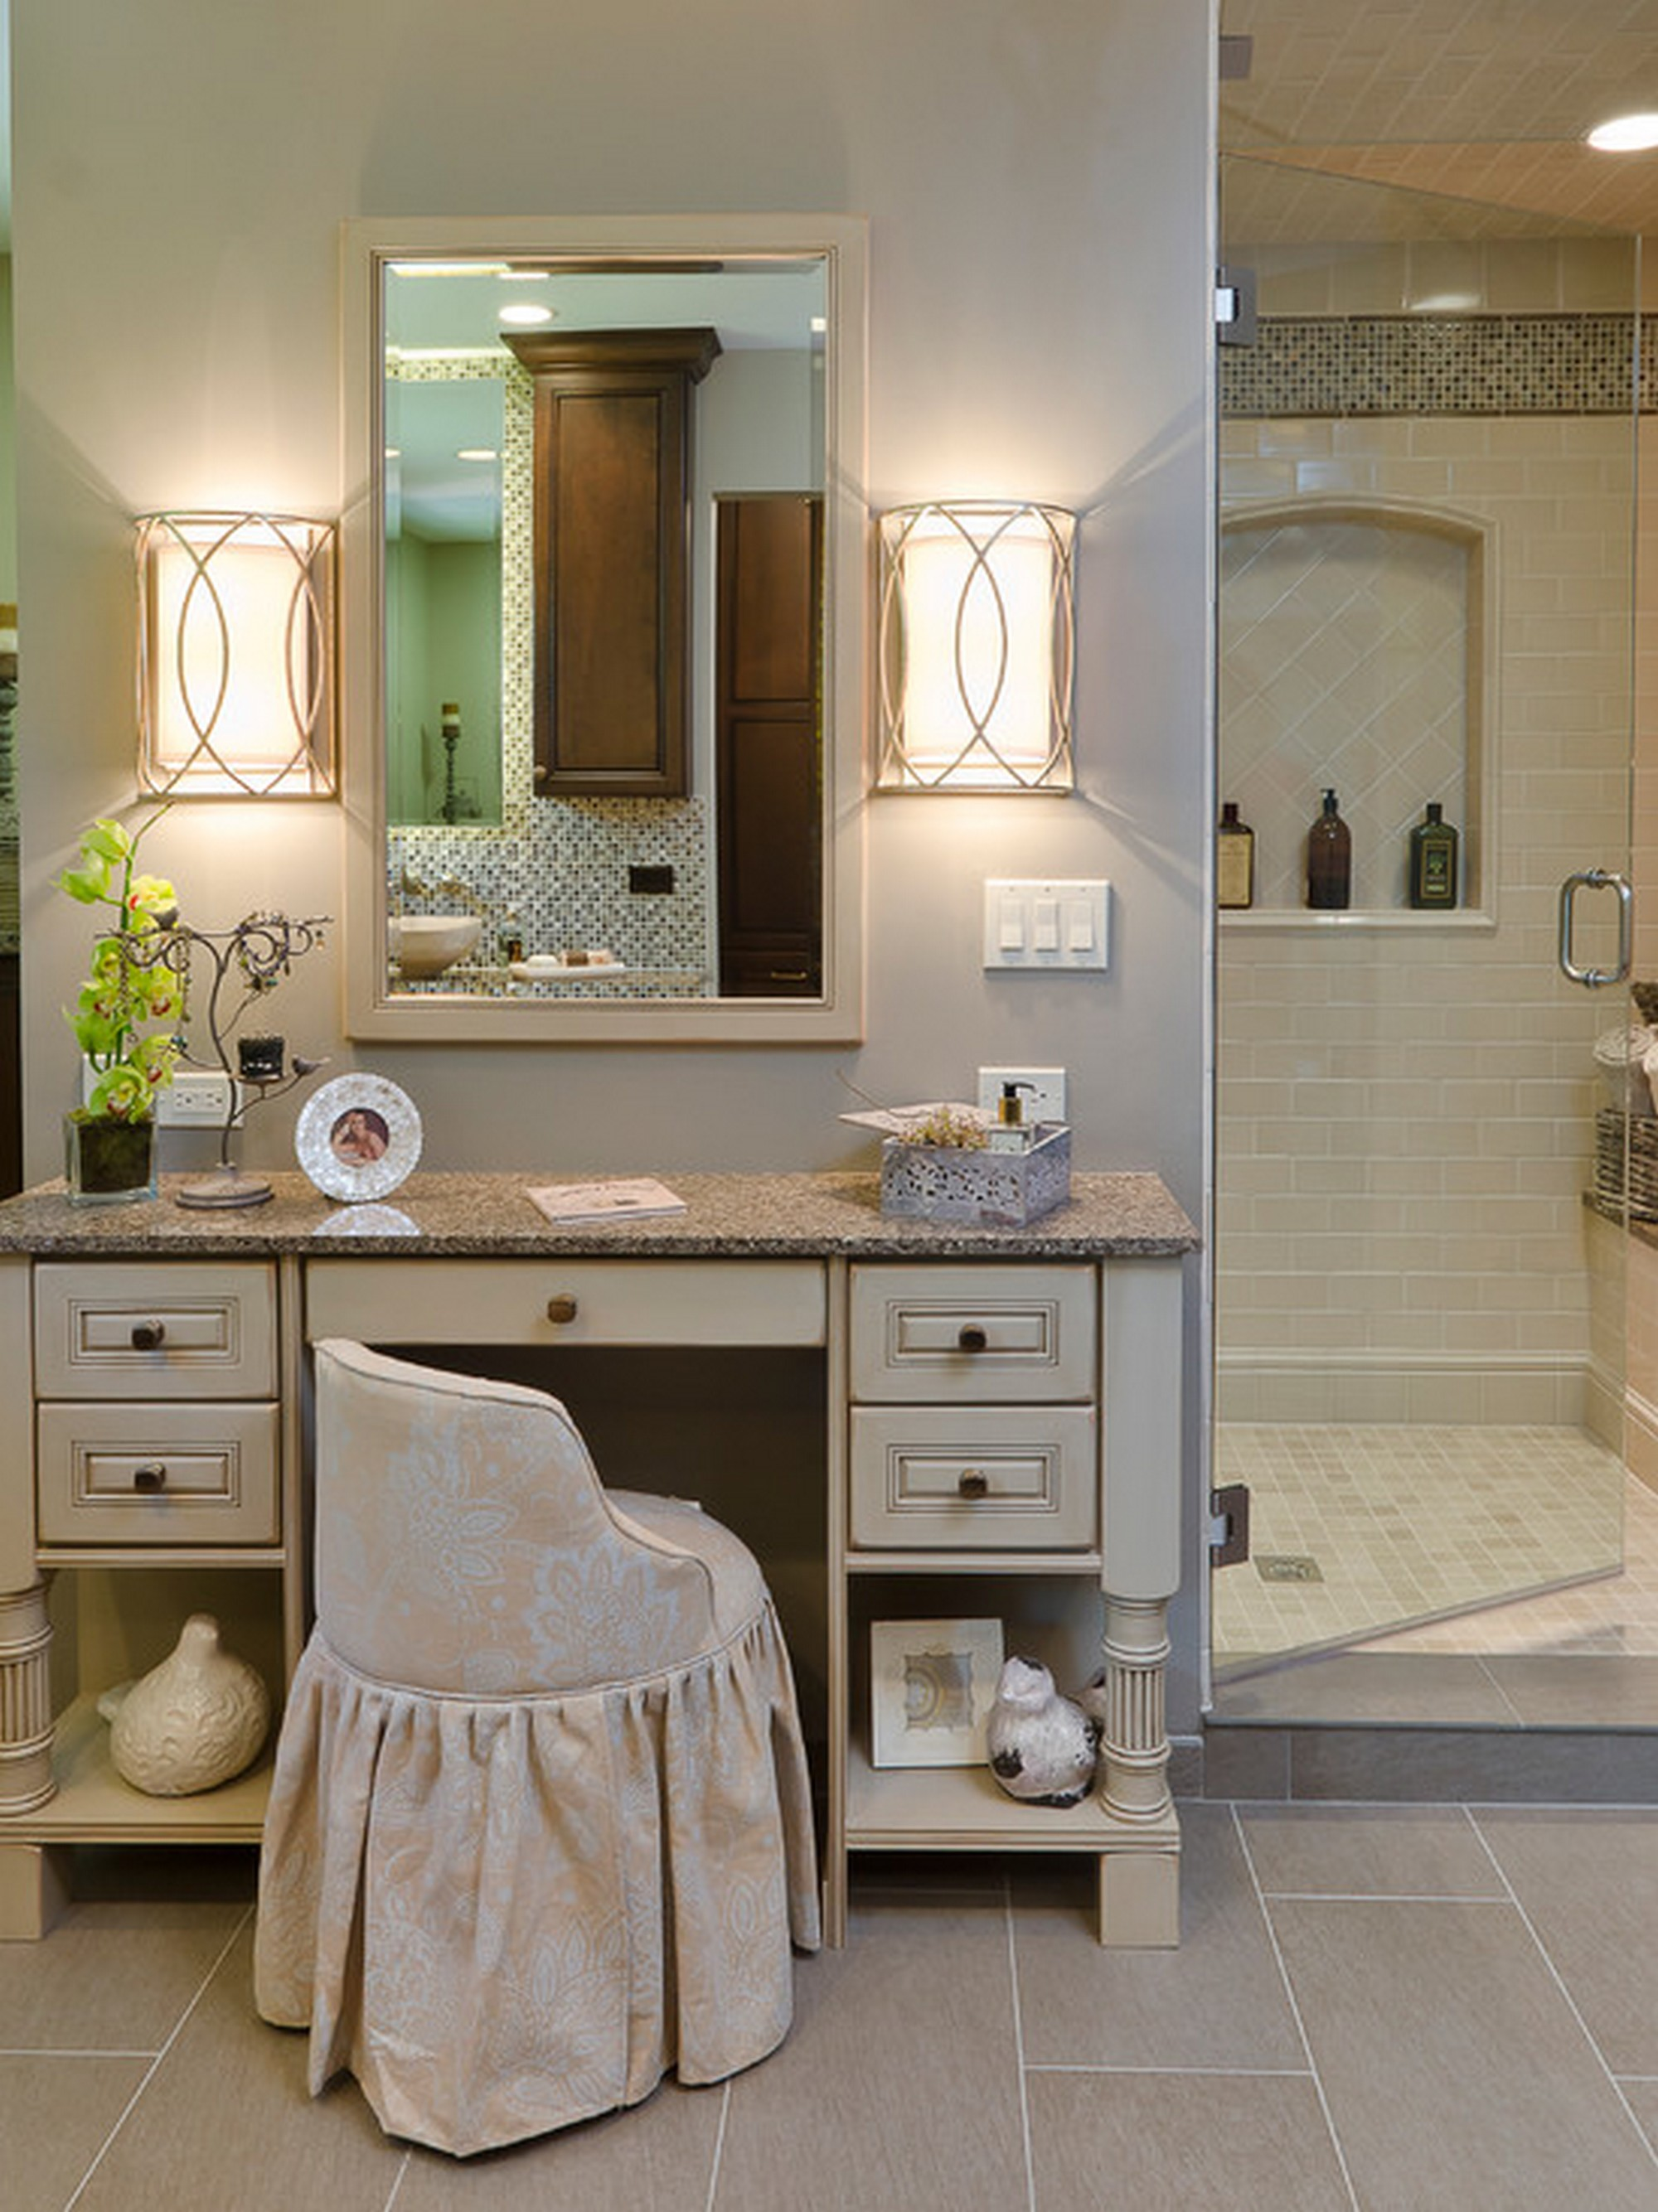 dressing-table-with-mirror-in-bathroom-furnished-with-wall-sconce-lightings-and-completed-with-chair